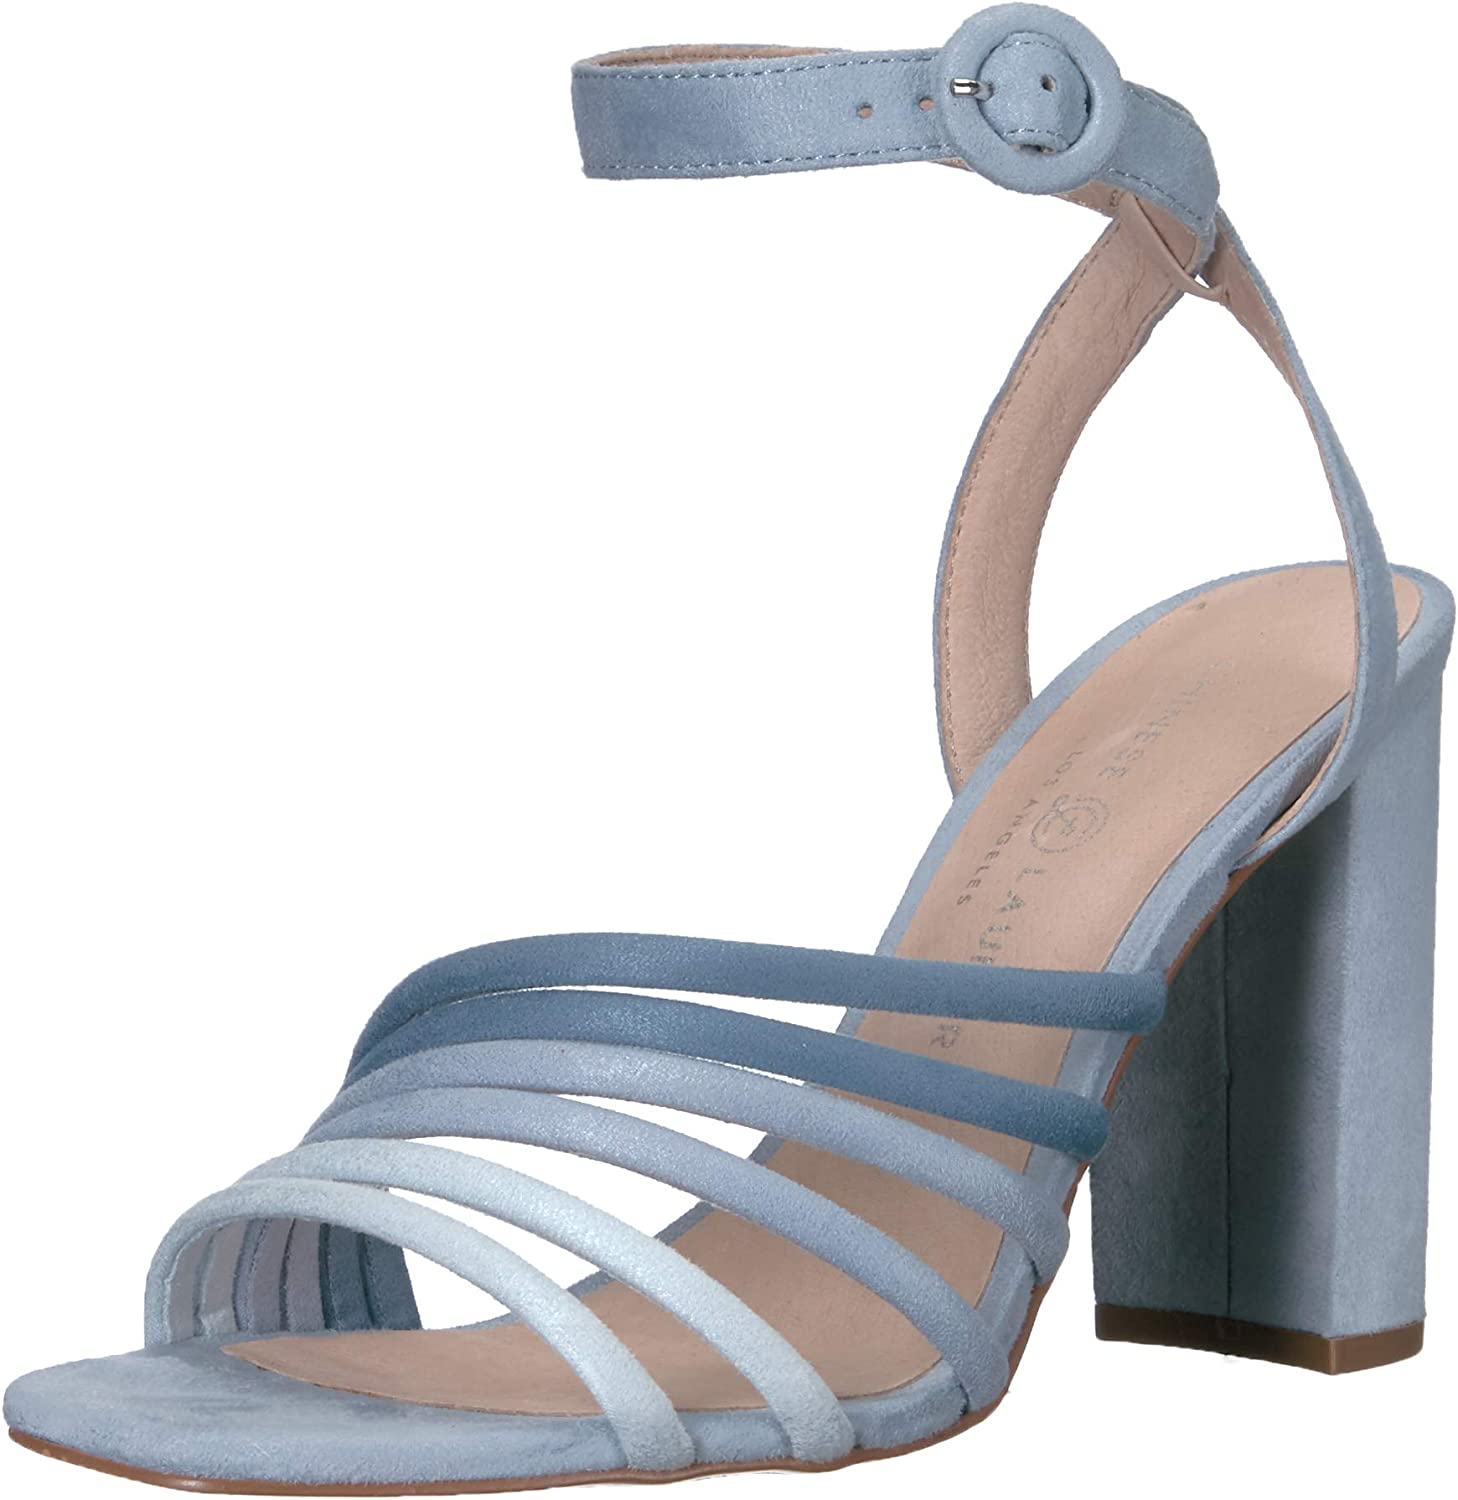 Chinese Laundry Women's Jonah Heeled Sandal